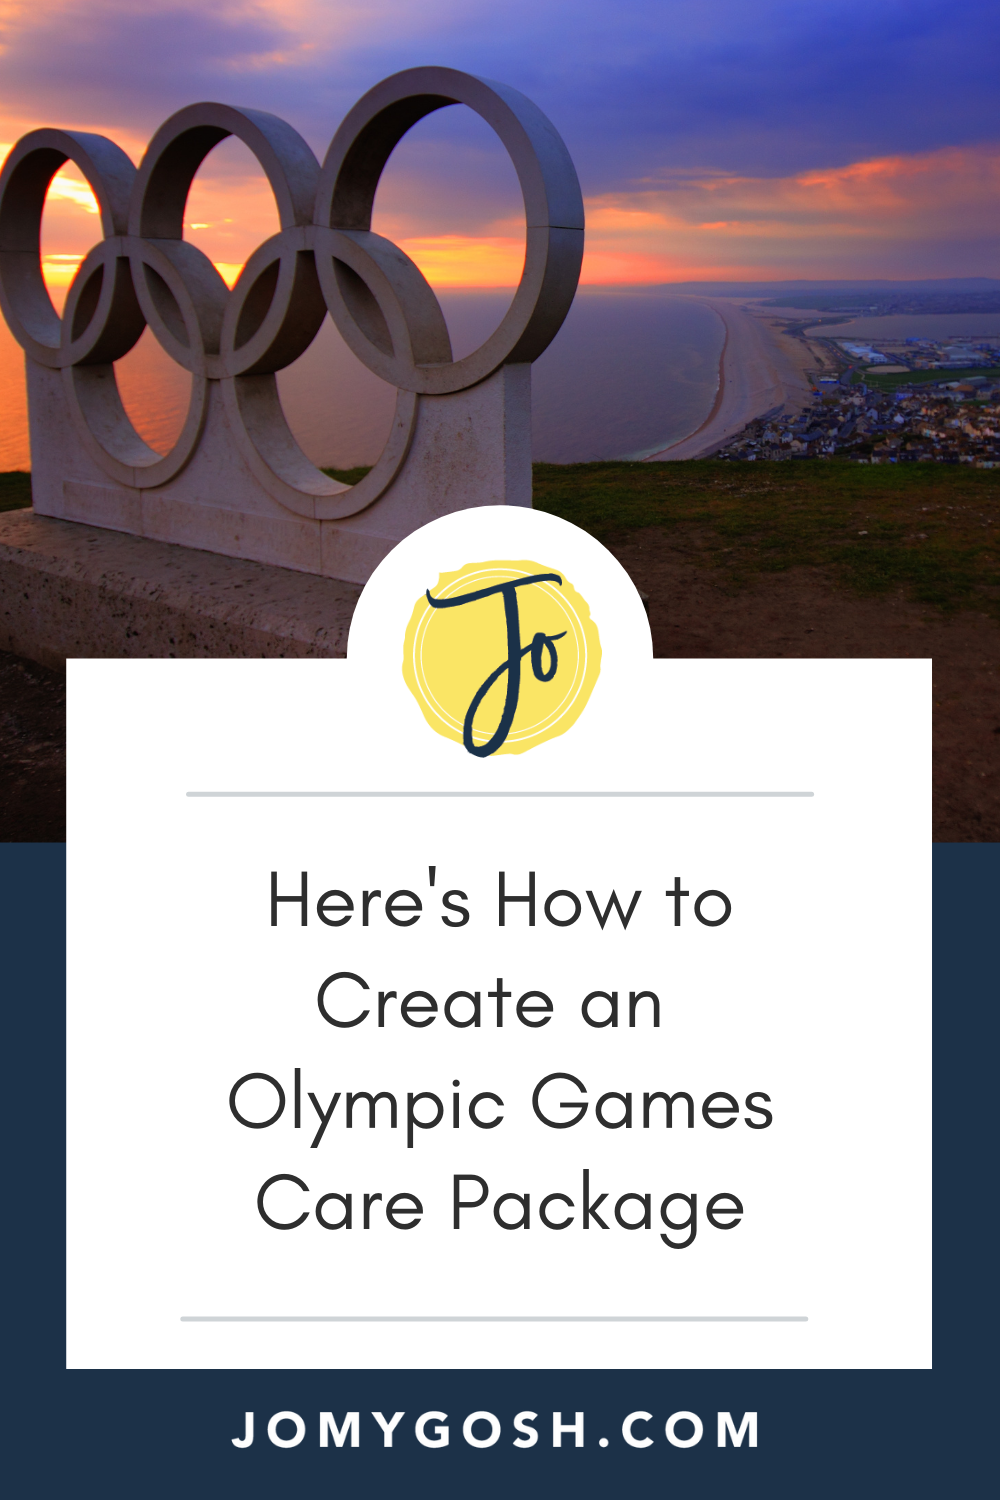 Celebrate the Olympic Games with a fantastic care package. These ideas will get you started. #military #carepackage #carepackages #happymail #sendmoremail #snailmail #militaryfamily #milfam #milspouse #milspouses #milso #milsos #milspo #milspos #missonary #missionaries #collegestudent